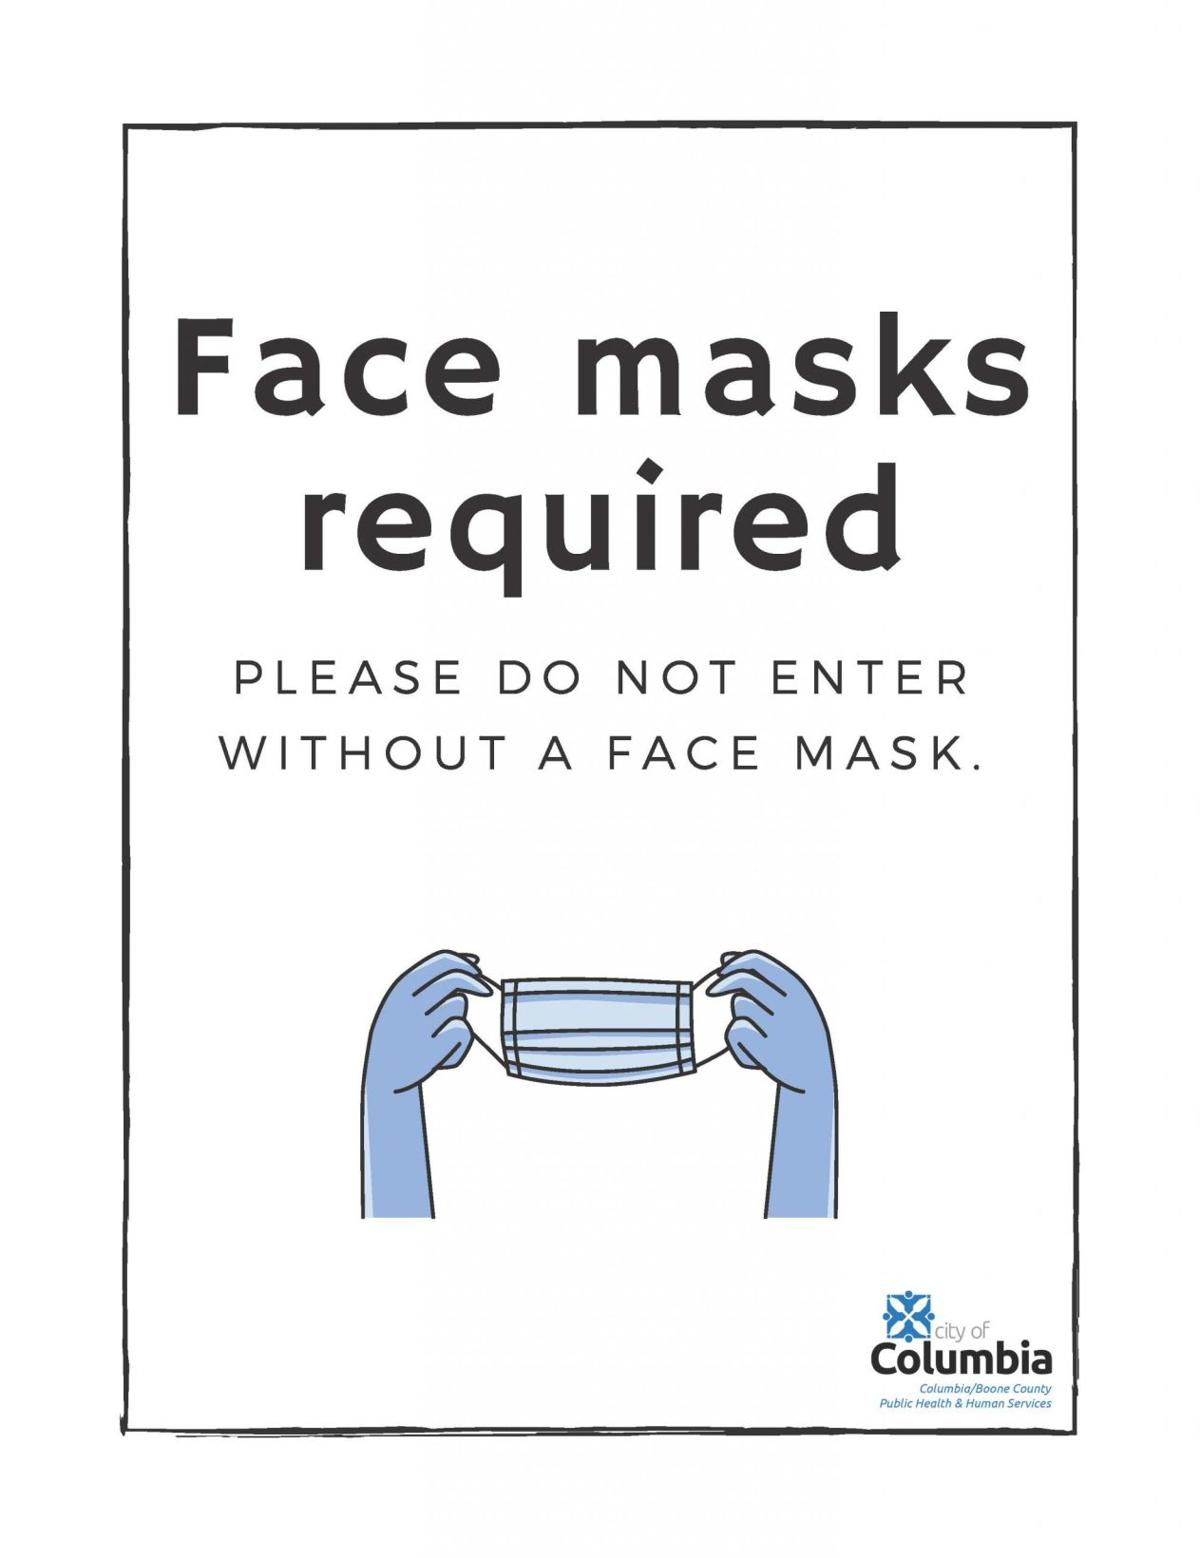 Please do not enter without a face mask